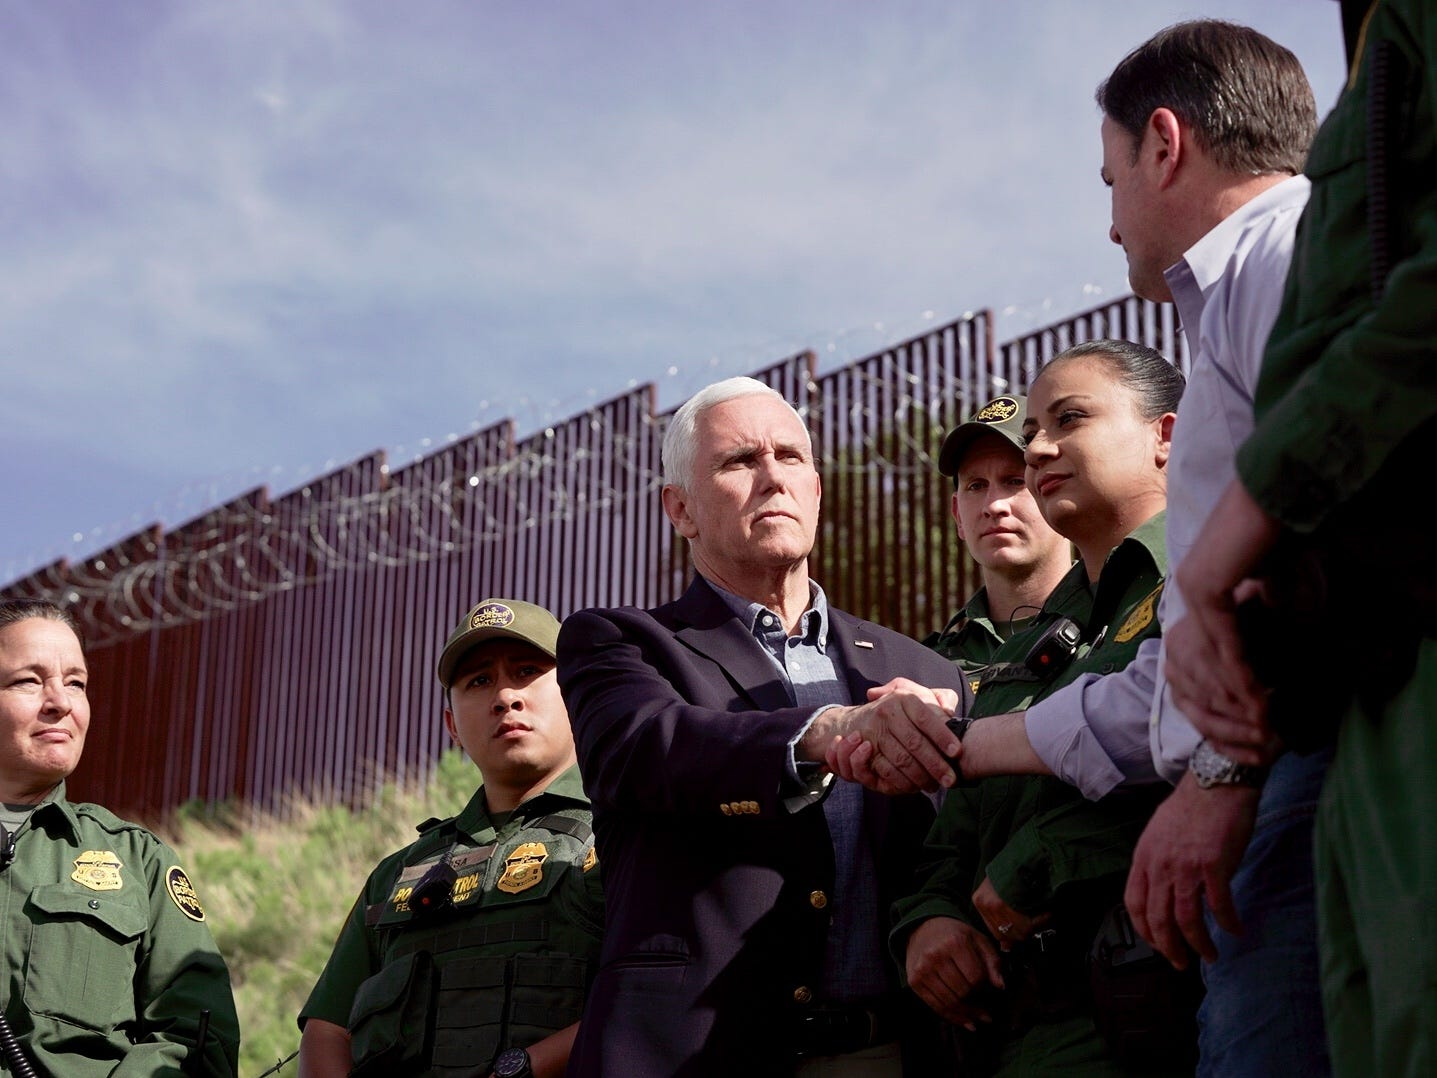 Vice President Mike Pence on Thursday is making his second visit to Arizona in two months. Pence met with border officials and toured sections of the border fence in Nogales. He was joined by Arizona Gov. Doug Ducey.